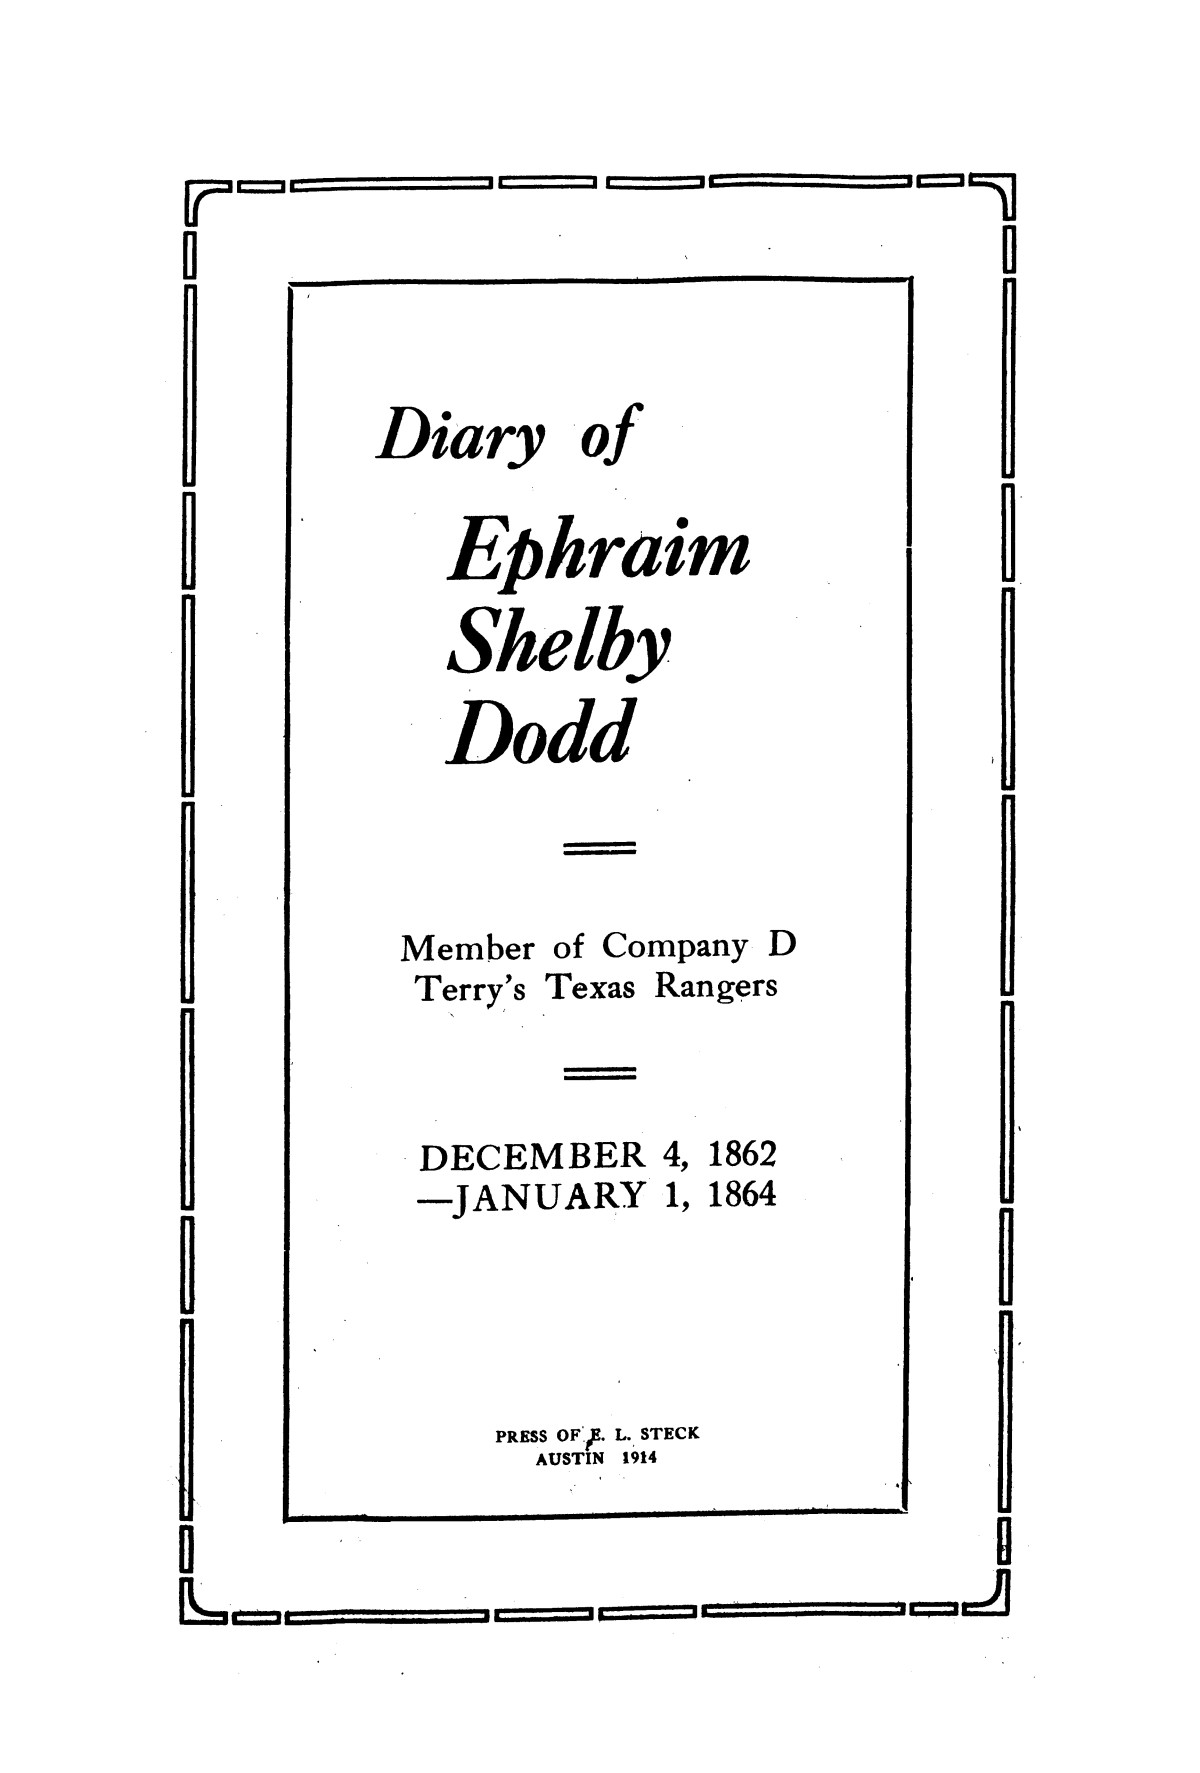 Diary of Ephraim Shelby Dodd : Member of Company D Terry's Texas Rangers, December 4, 1862--January 1, 1864.                                                                                                      [Sequence #]: 1 of 33